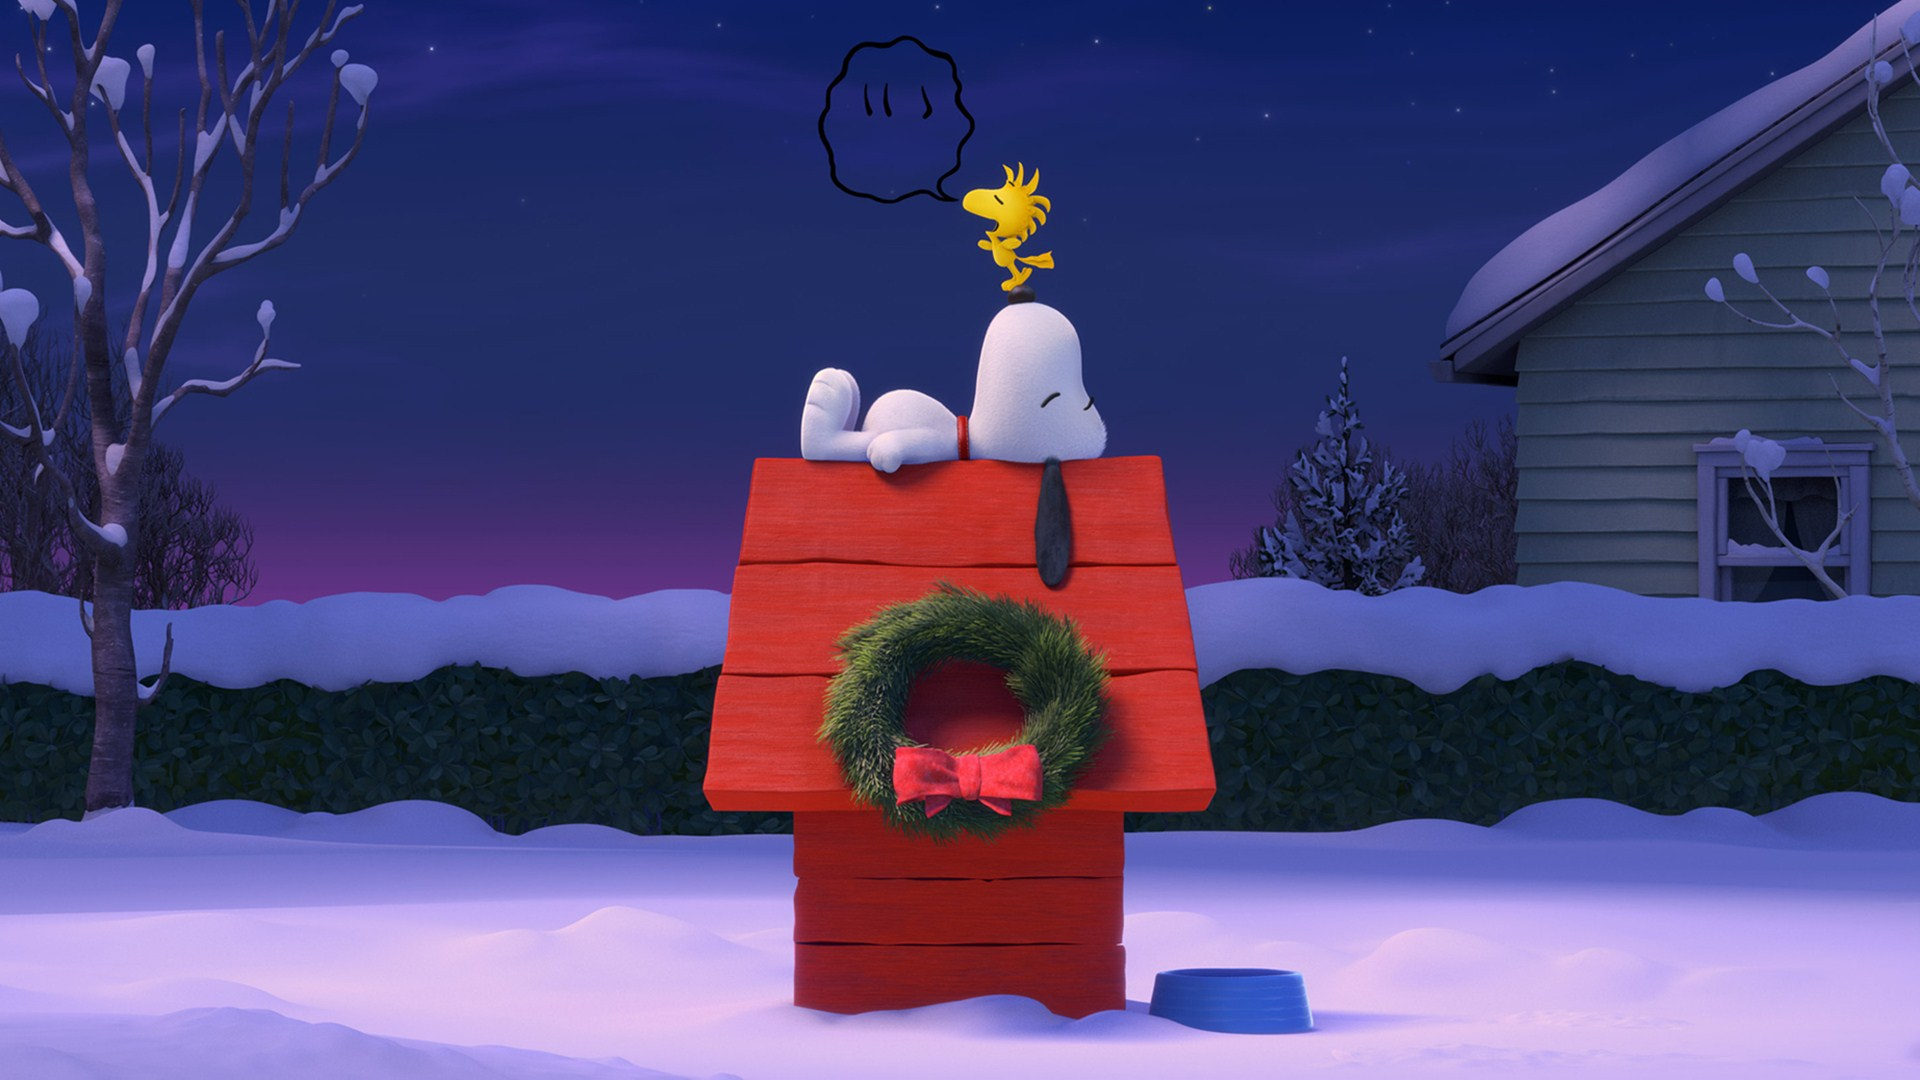 And Charlie Brown The Peanuts HD Wallpaper   Stylish HD Wallpapers 1920x1080